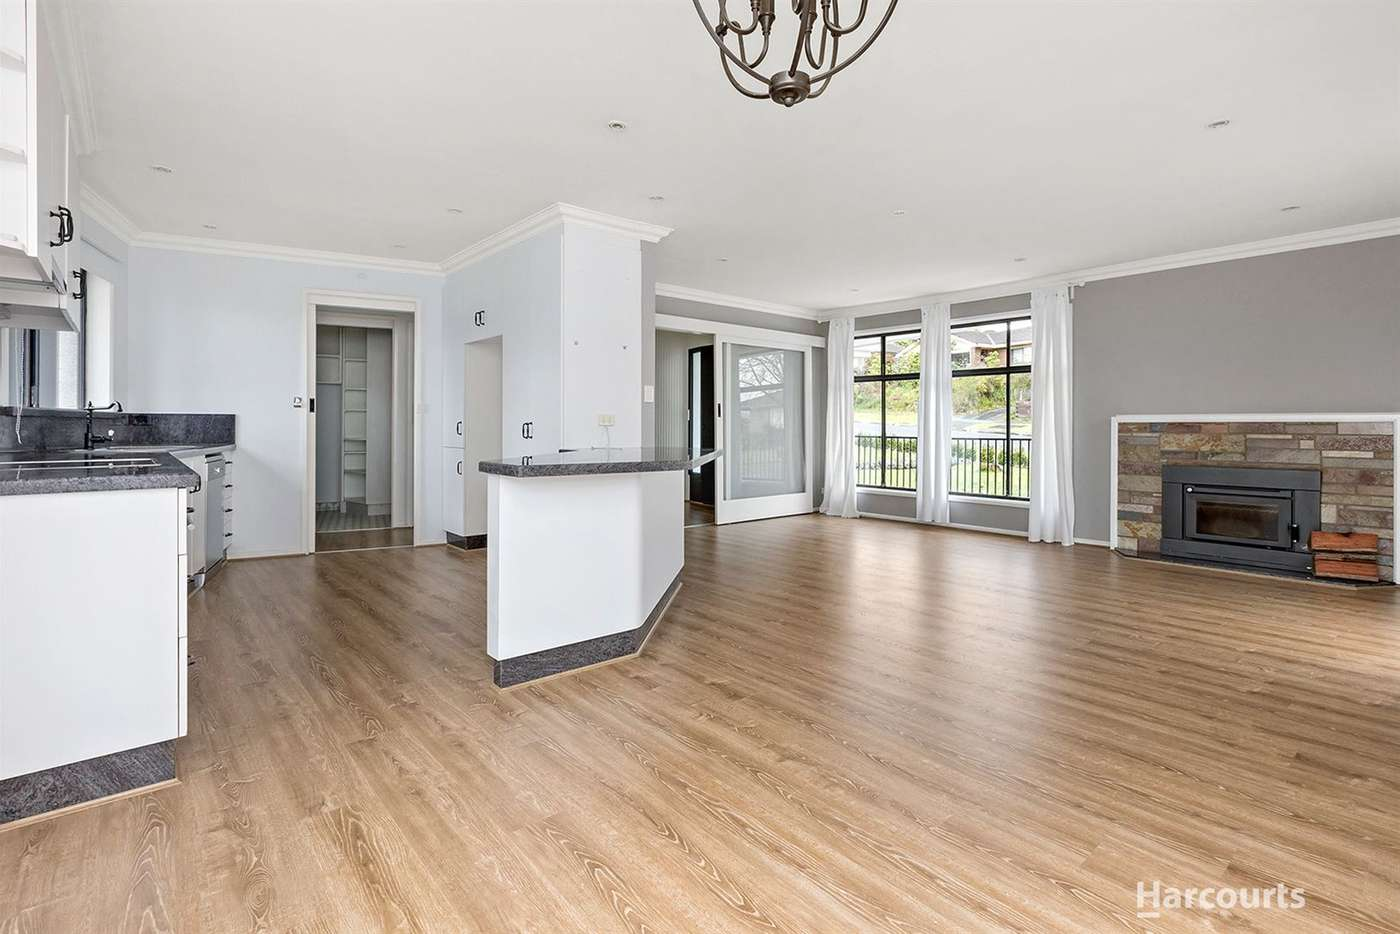 Fifth view of Homely house listing, 9 Leonard Court, Pakenham VIC 3810